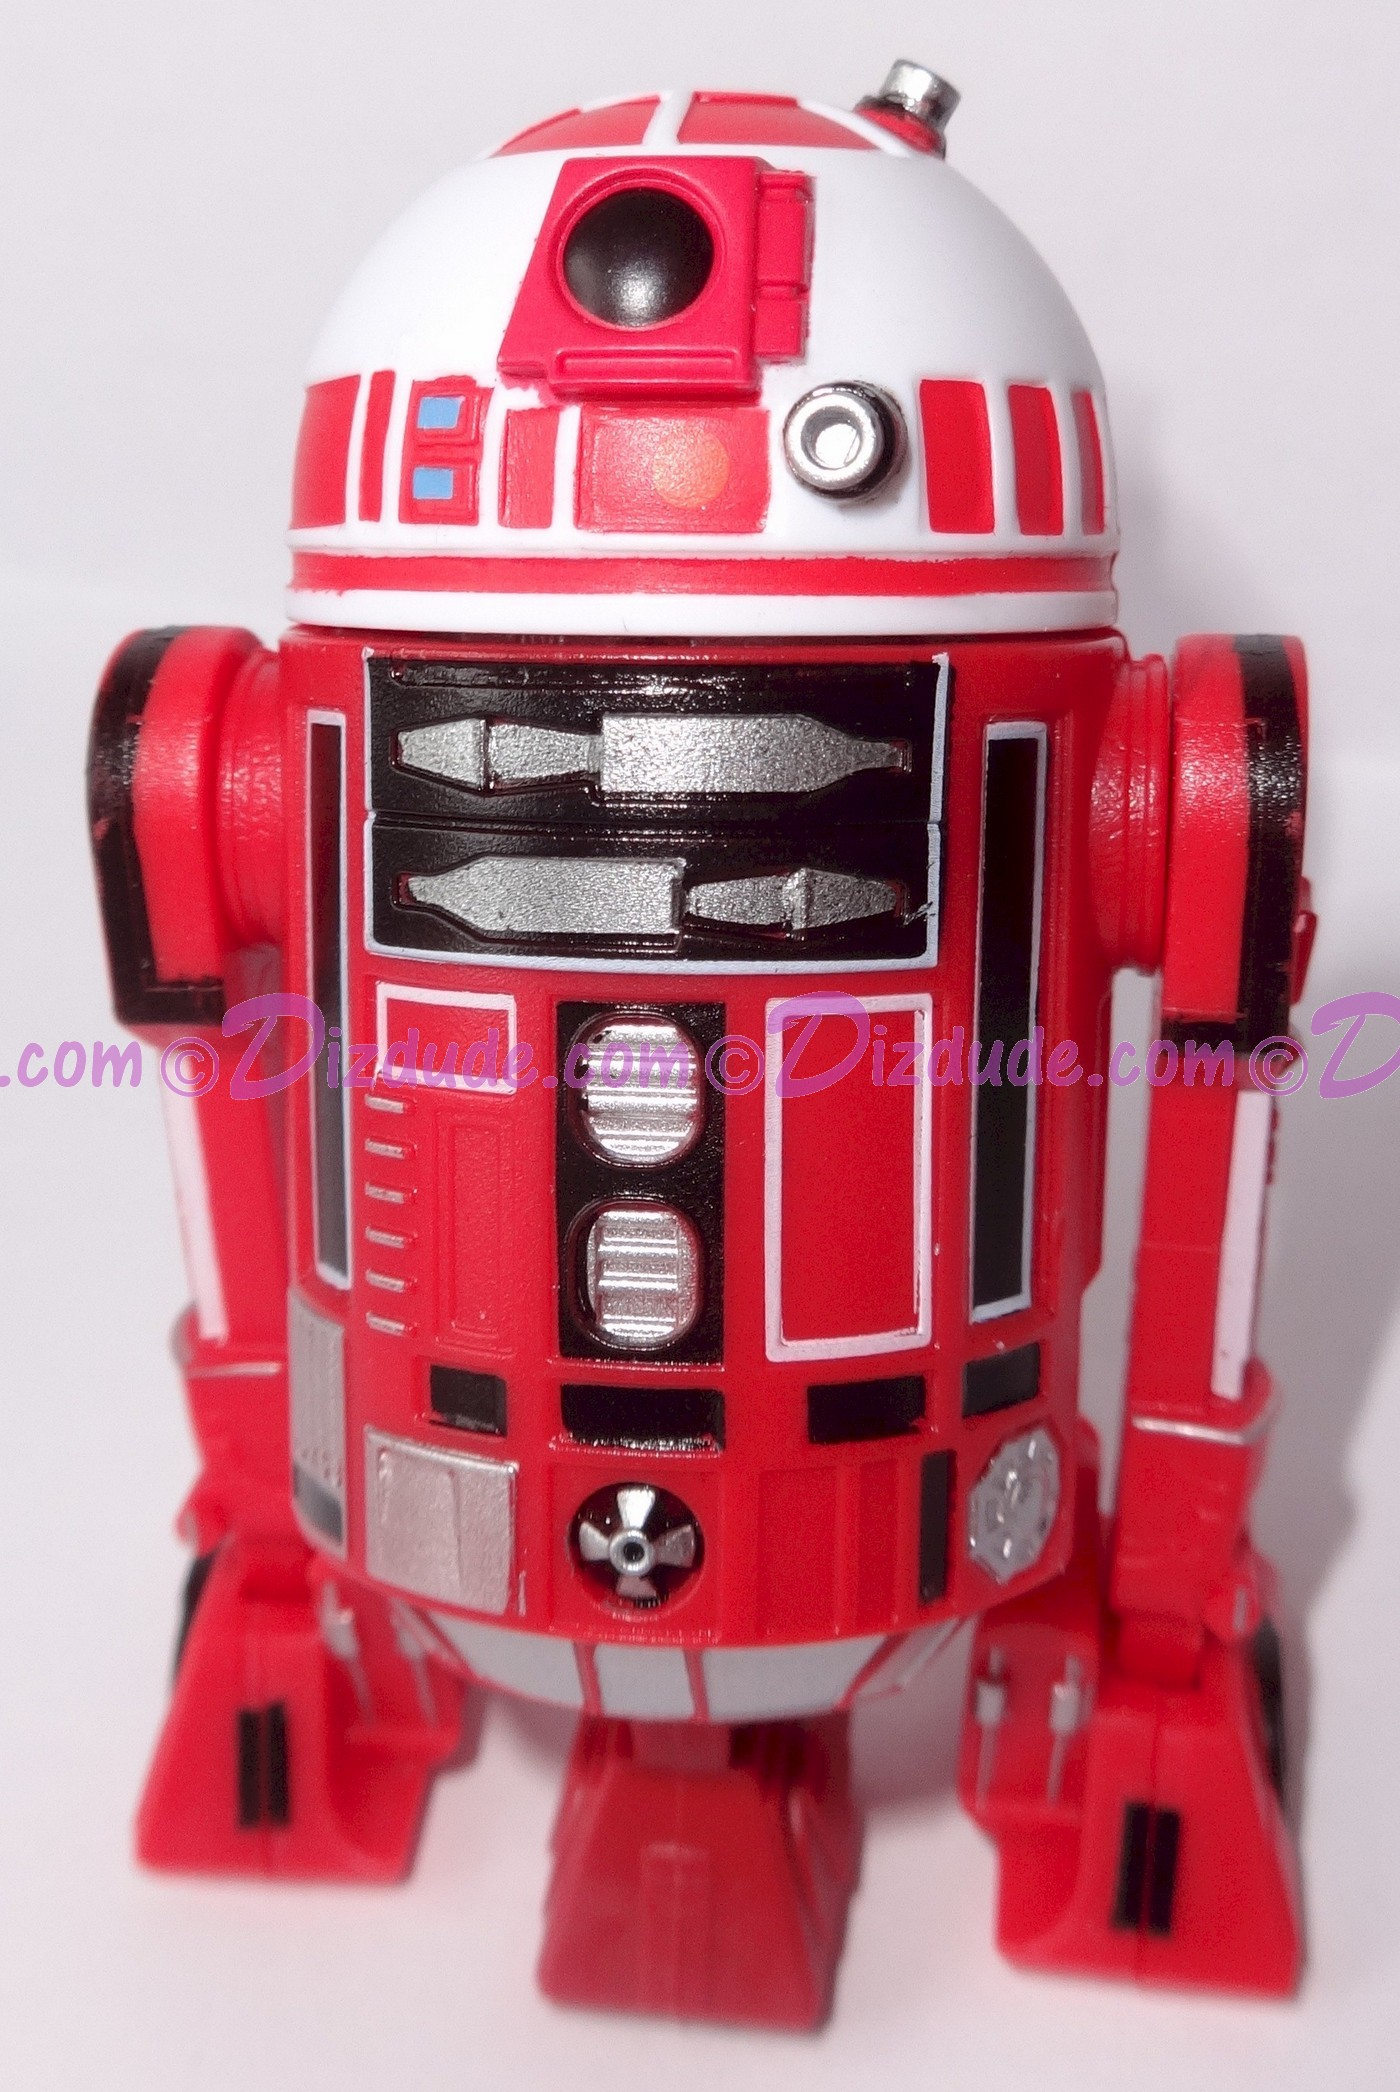 R2 Red & White Astromech Droid ~ Pick-A-Hat ~ Series 2 from Disney Star Wars Build-A-Droid Factory © Dizdude.com